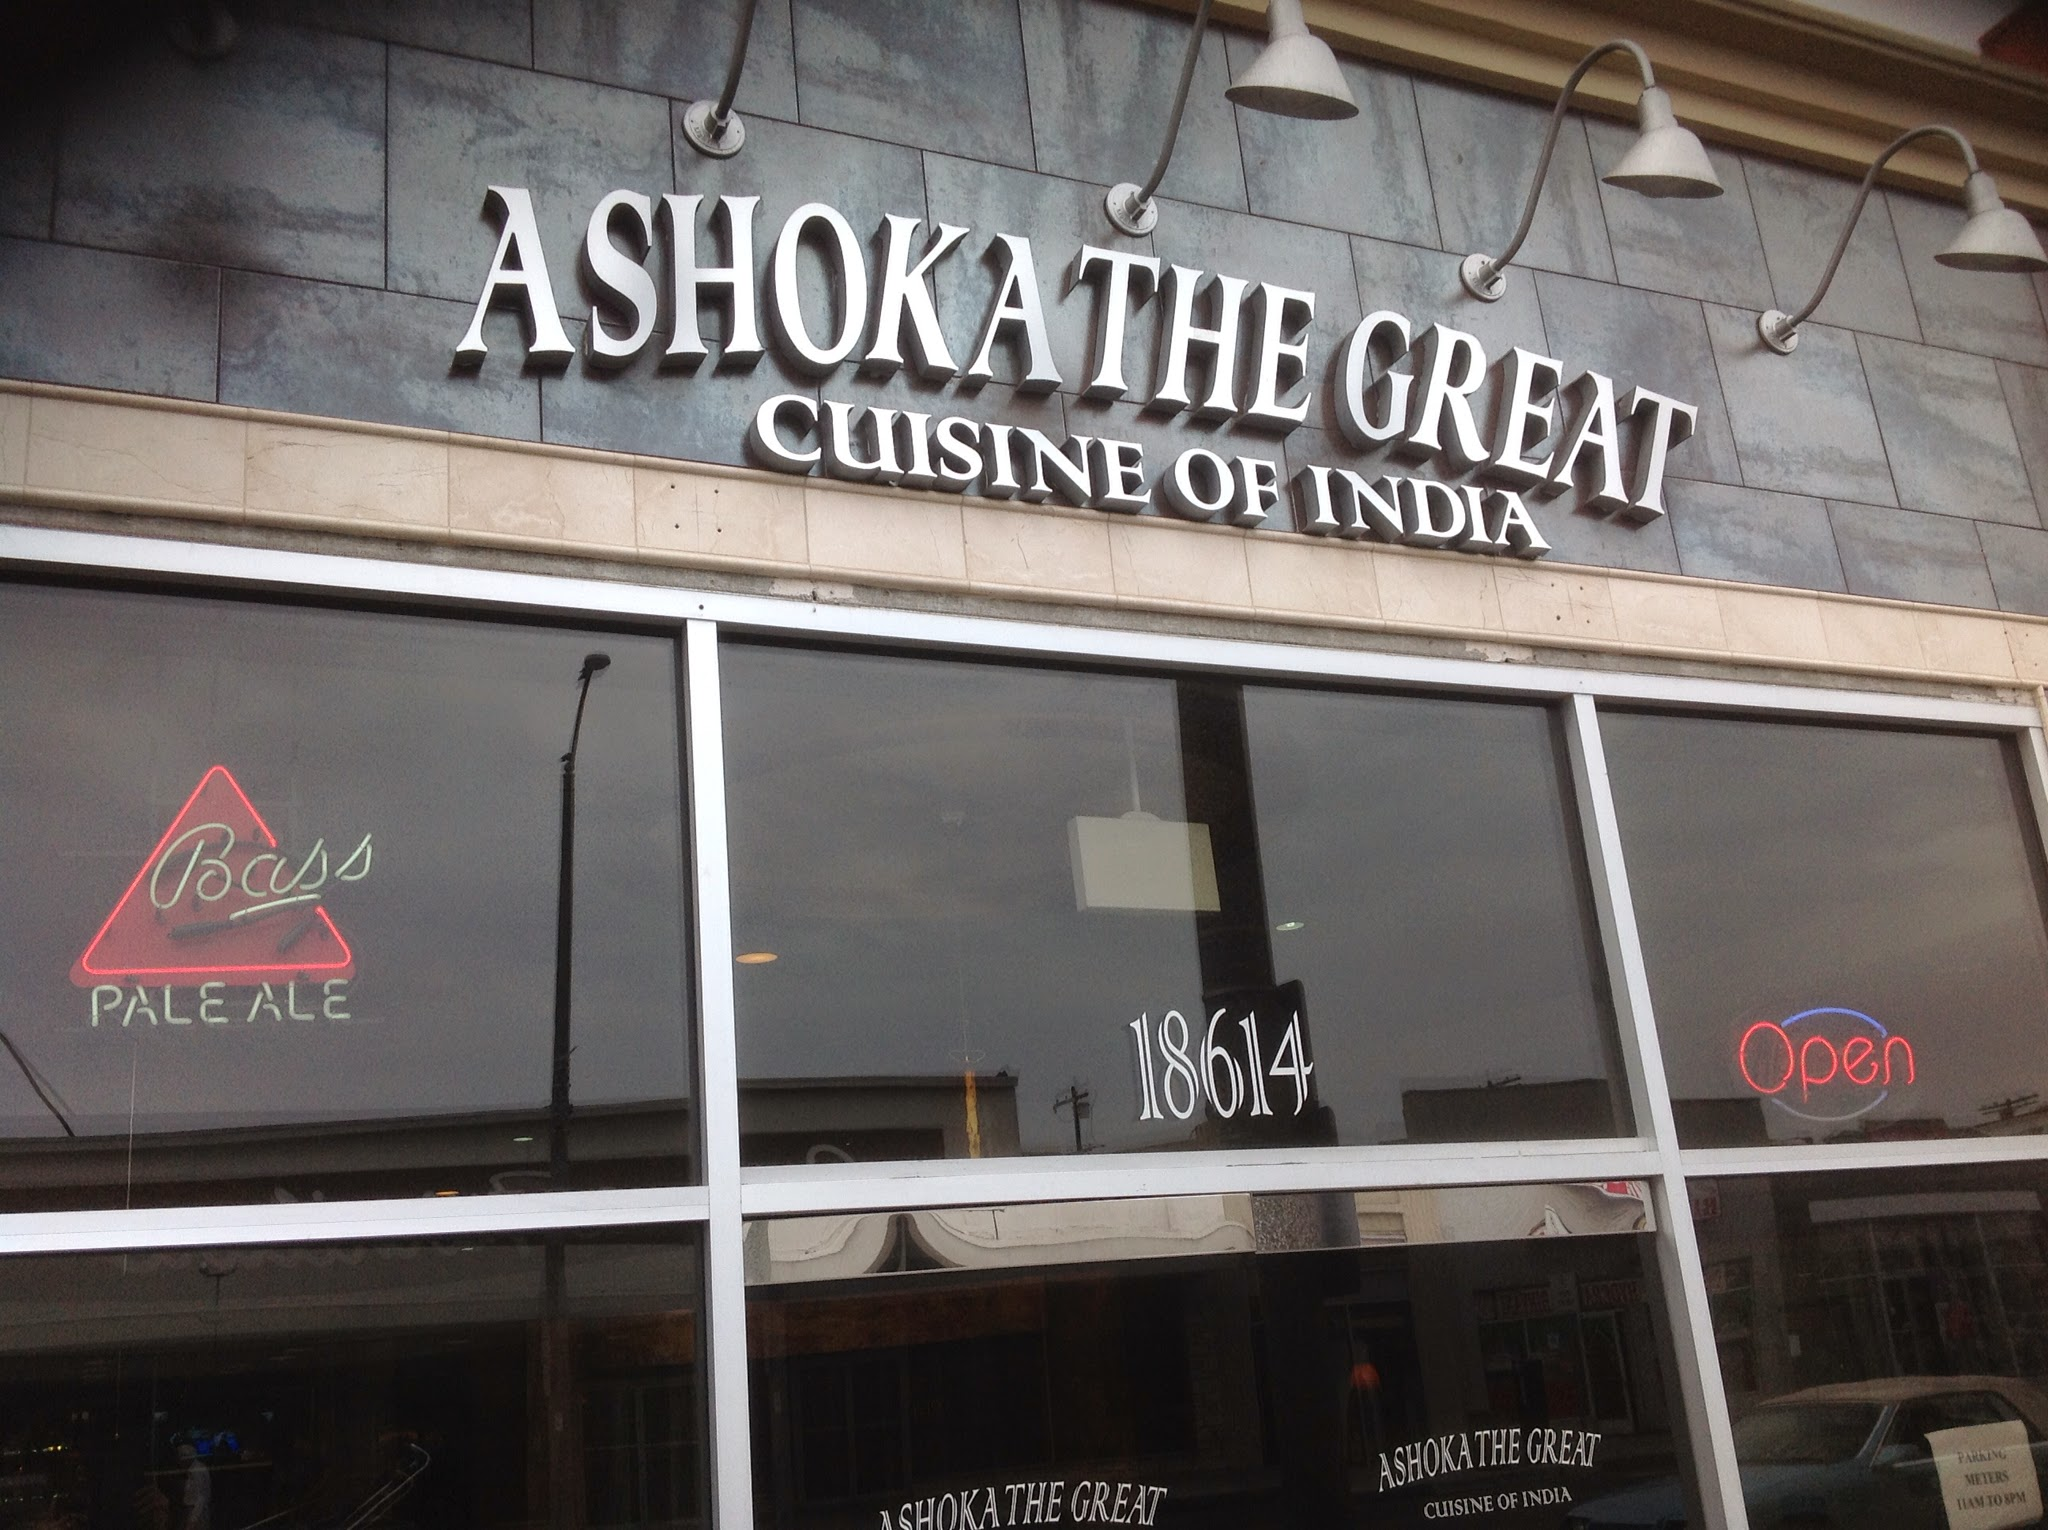 ashoka the great cuisine